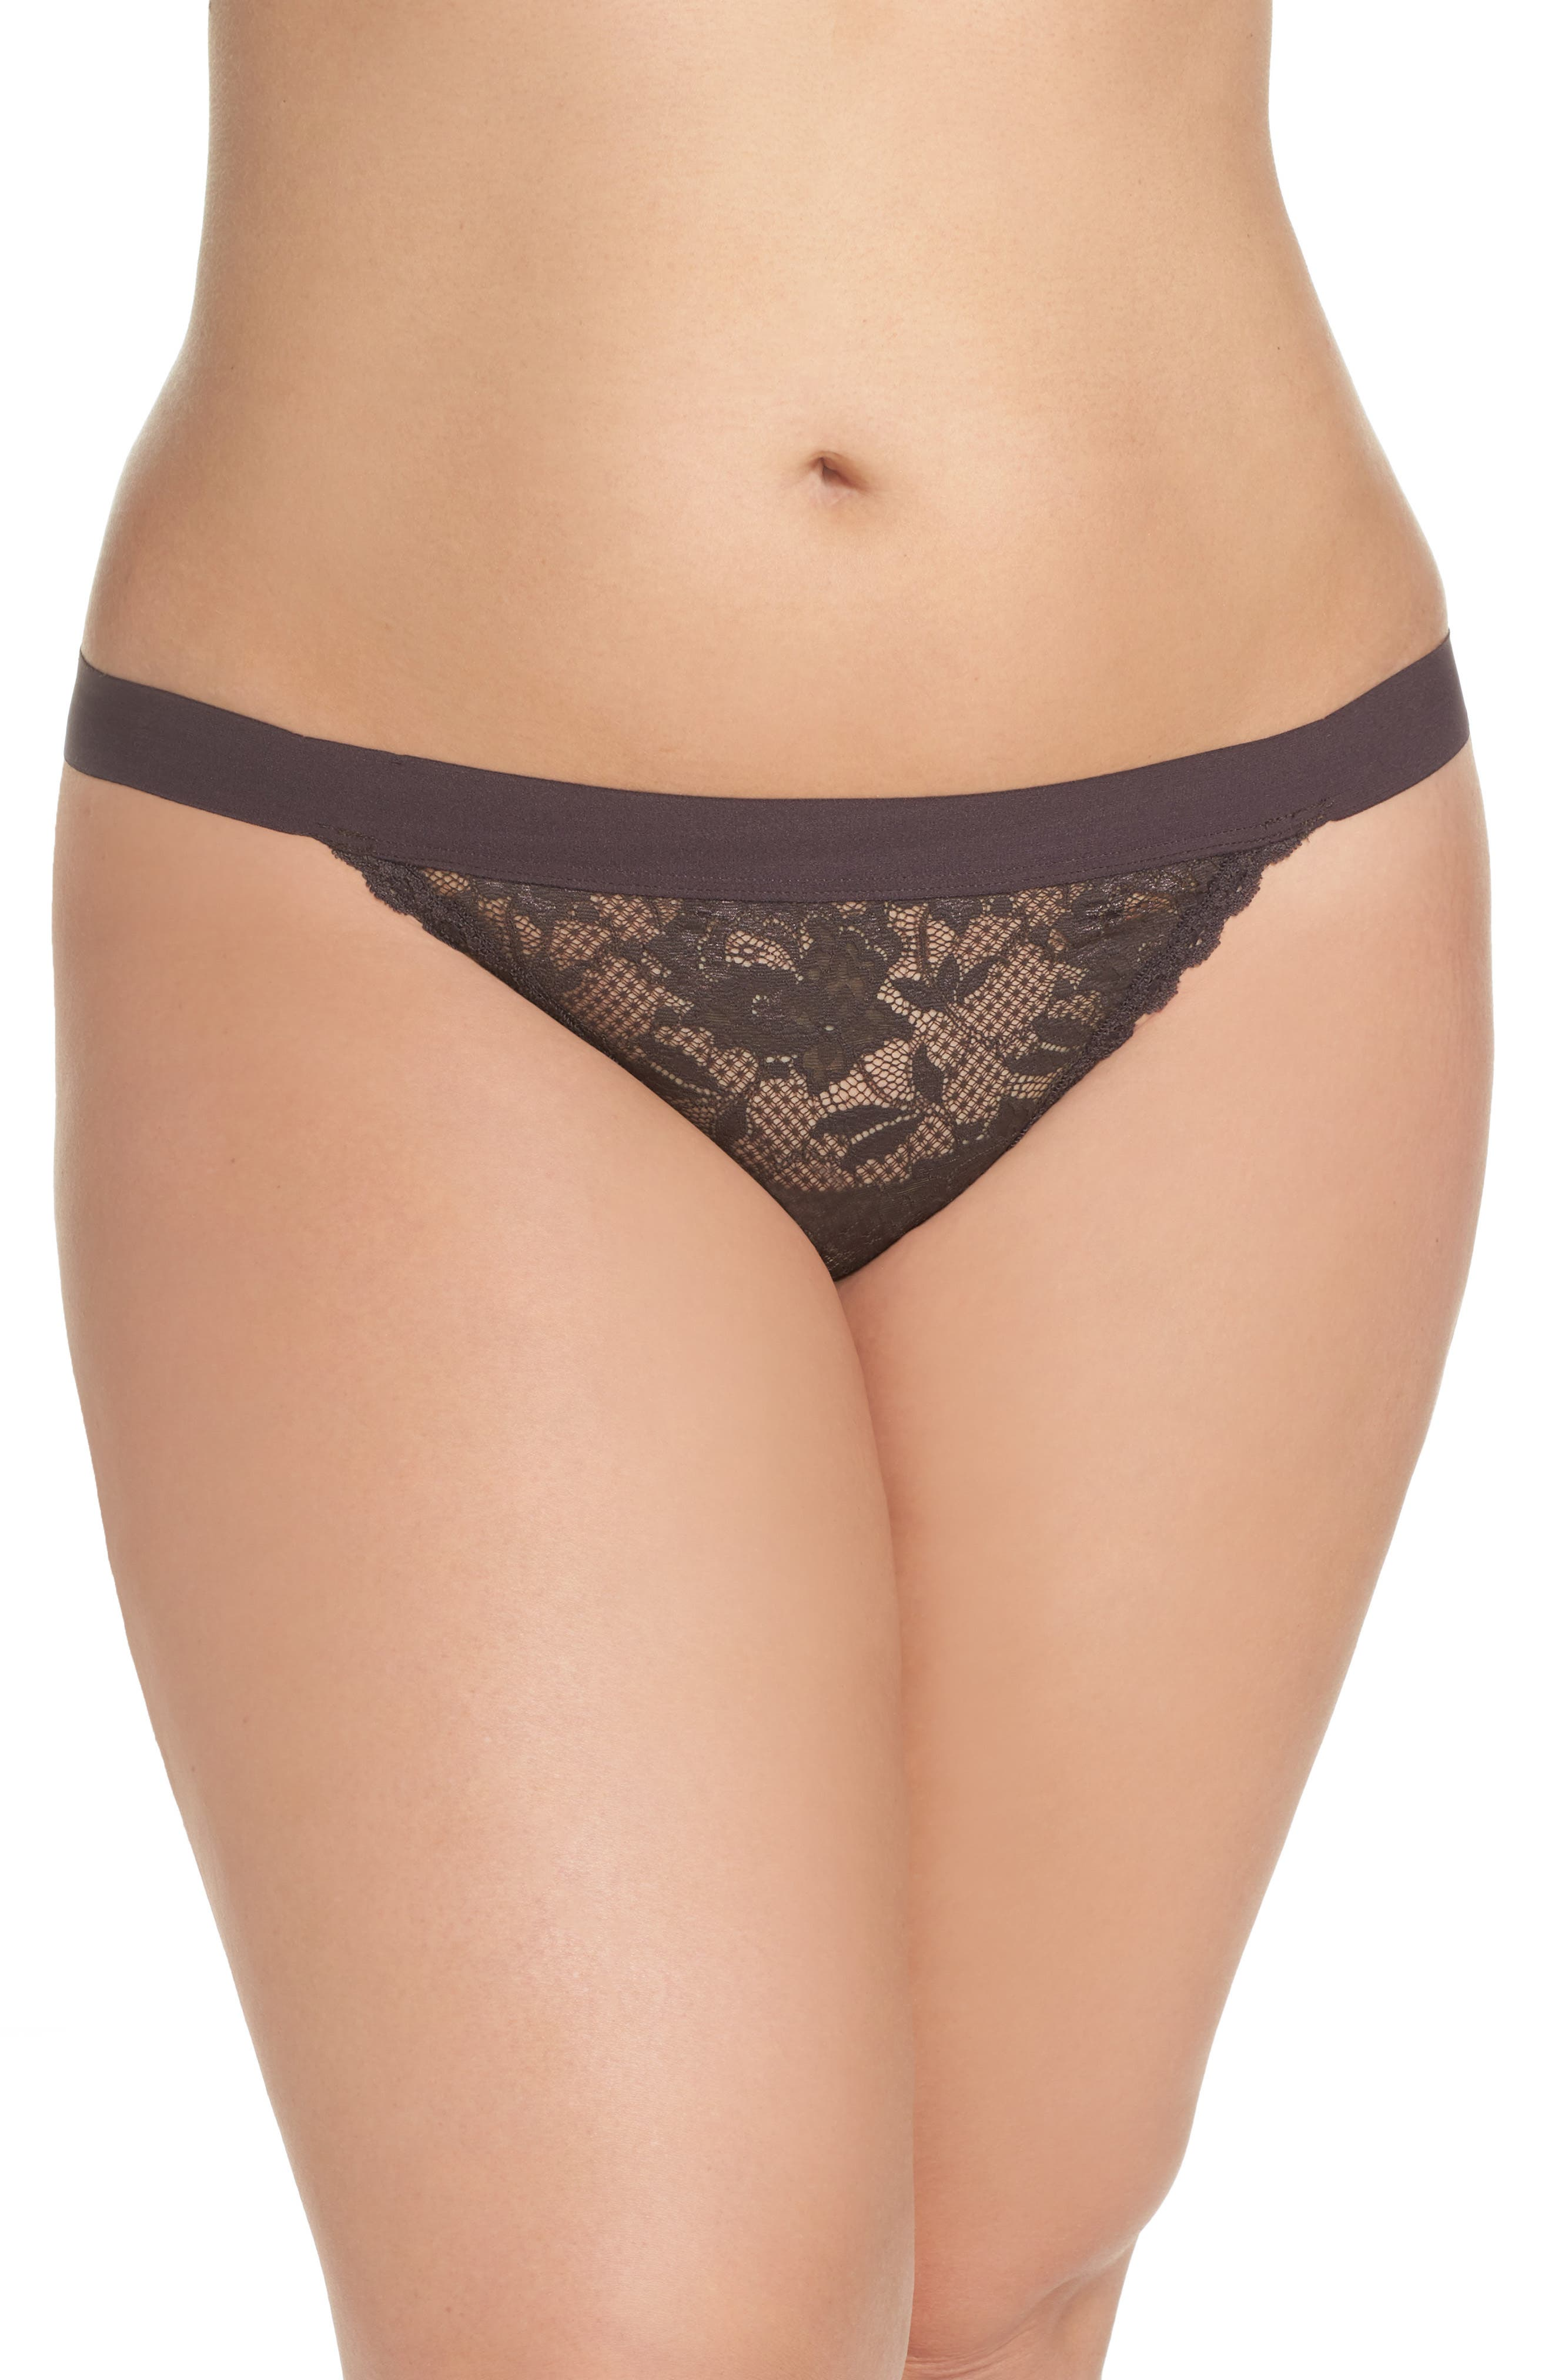 Never Say Never G-String Thong,                         Main,                         color, Graphite